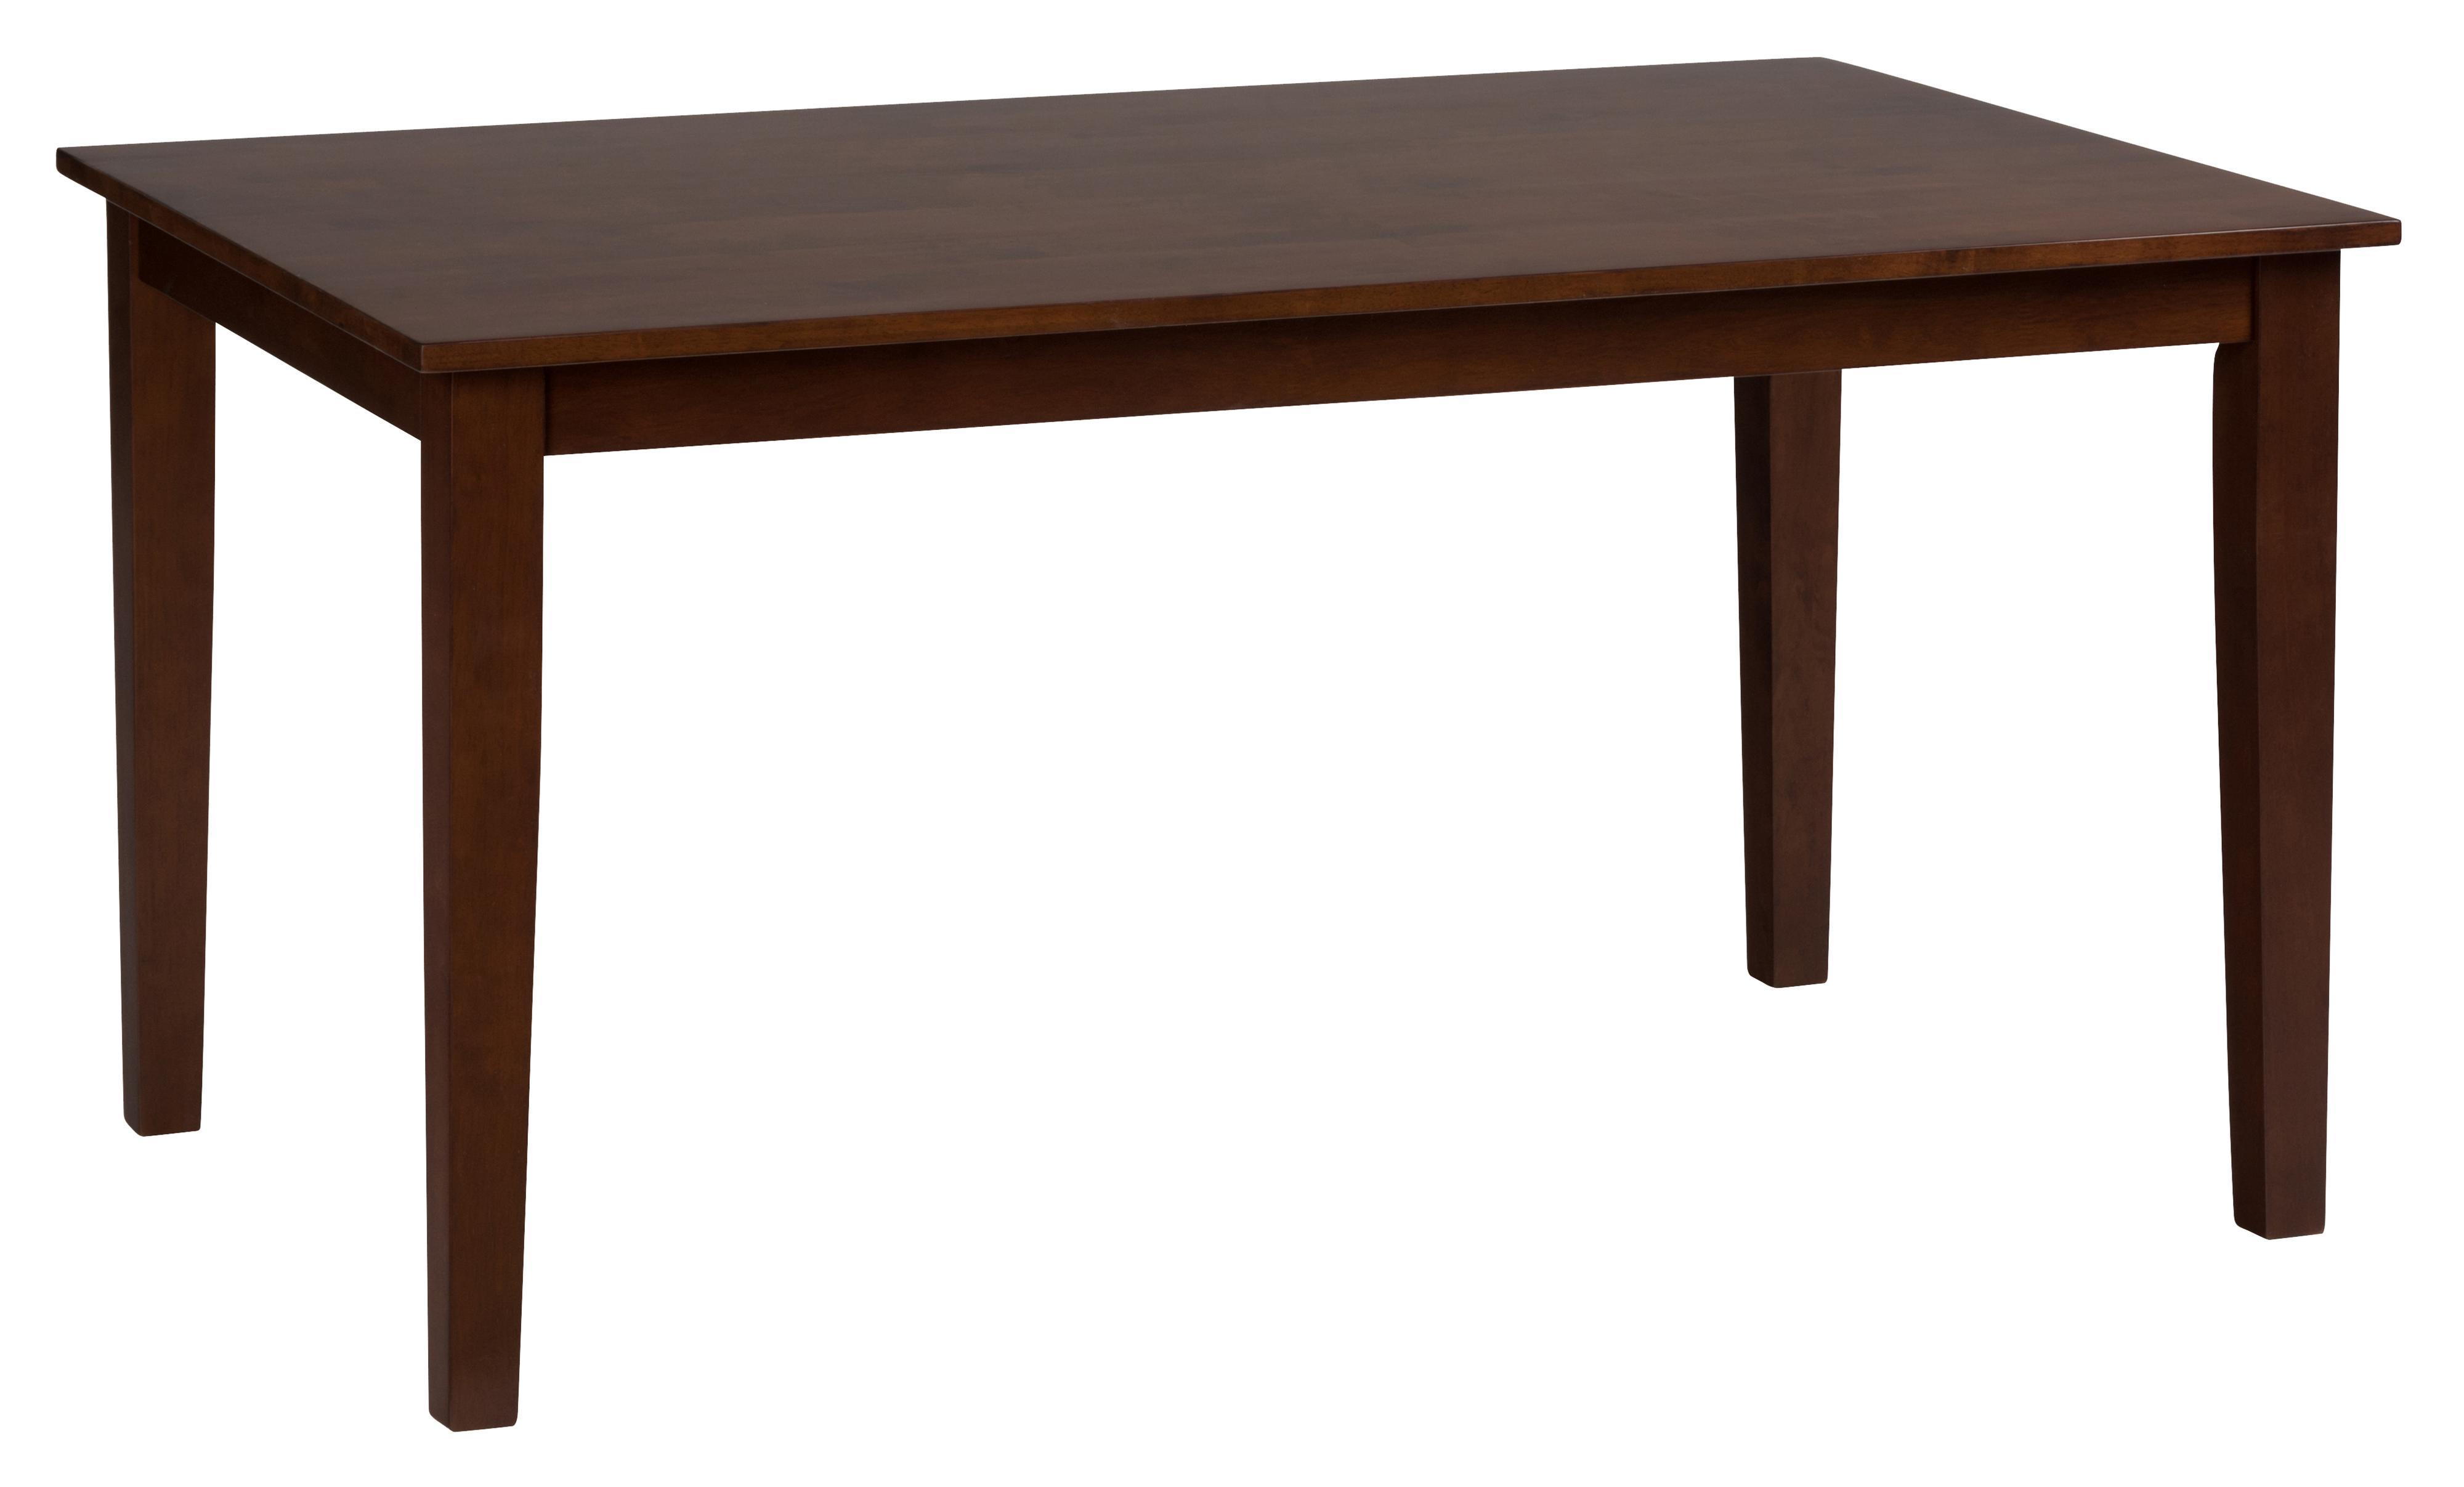 20 Seat Dining Table Simplicity Rectangle Dining Table That Seats 6 Comfortably